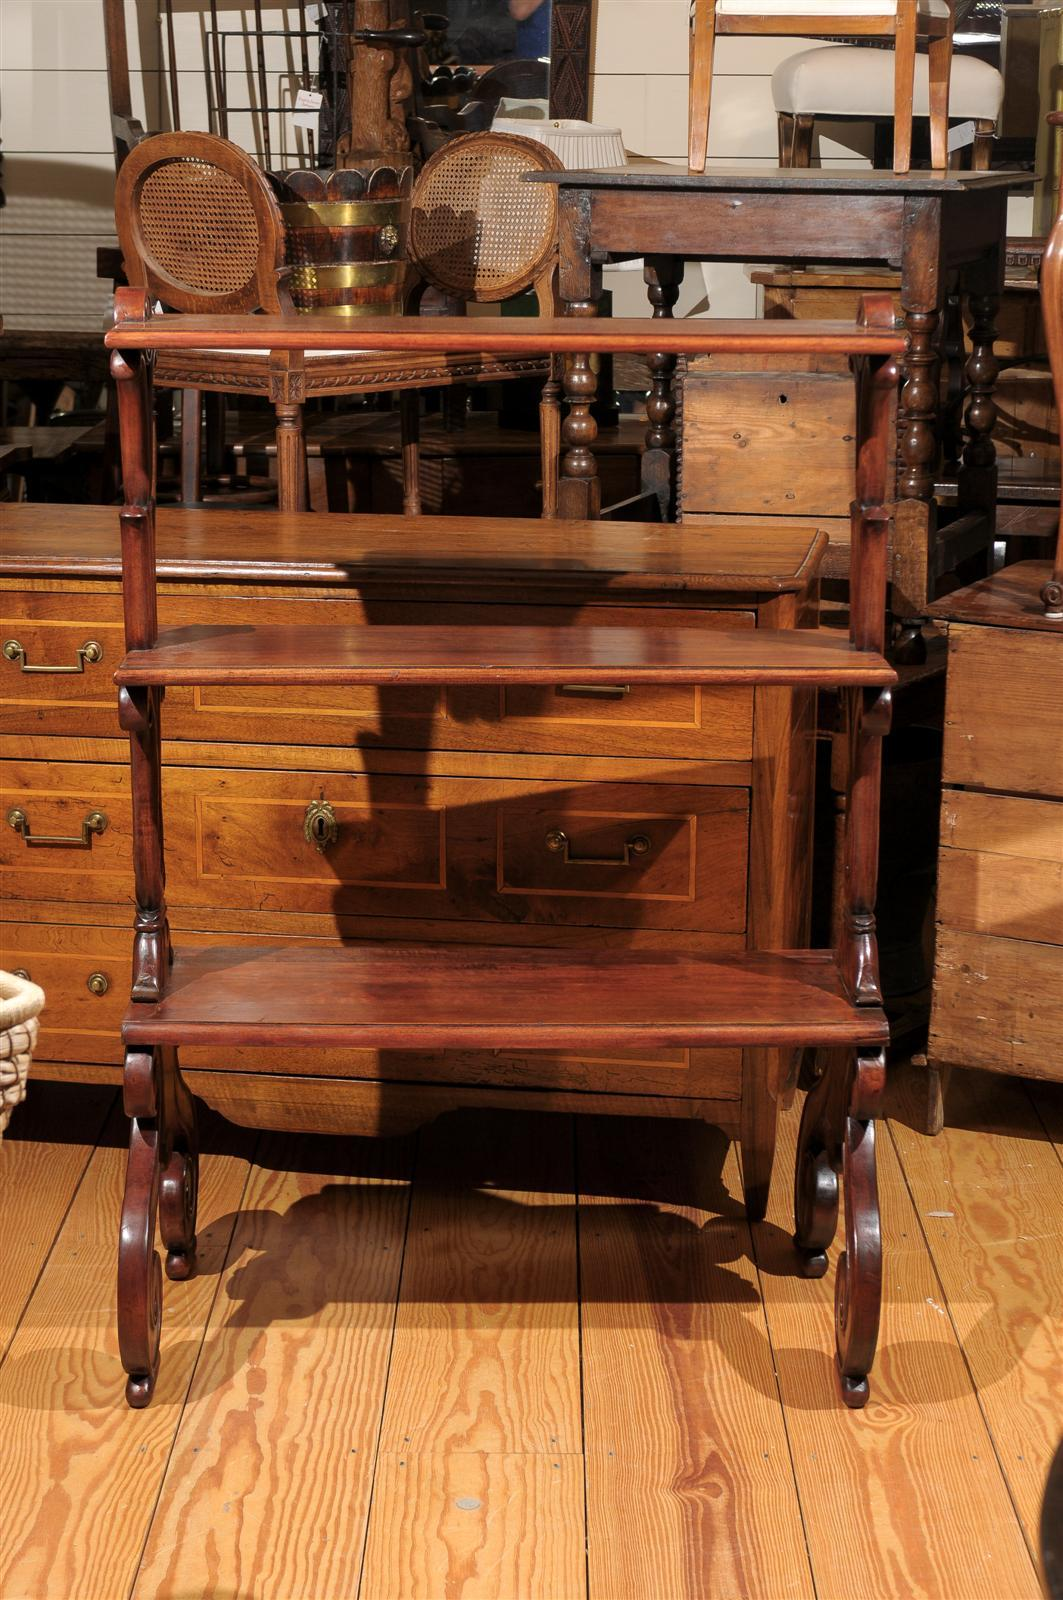 Mahogany Three-Tiered Shelf with Scrolled Legs from the Late 19th Century For Sale 5